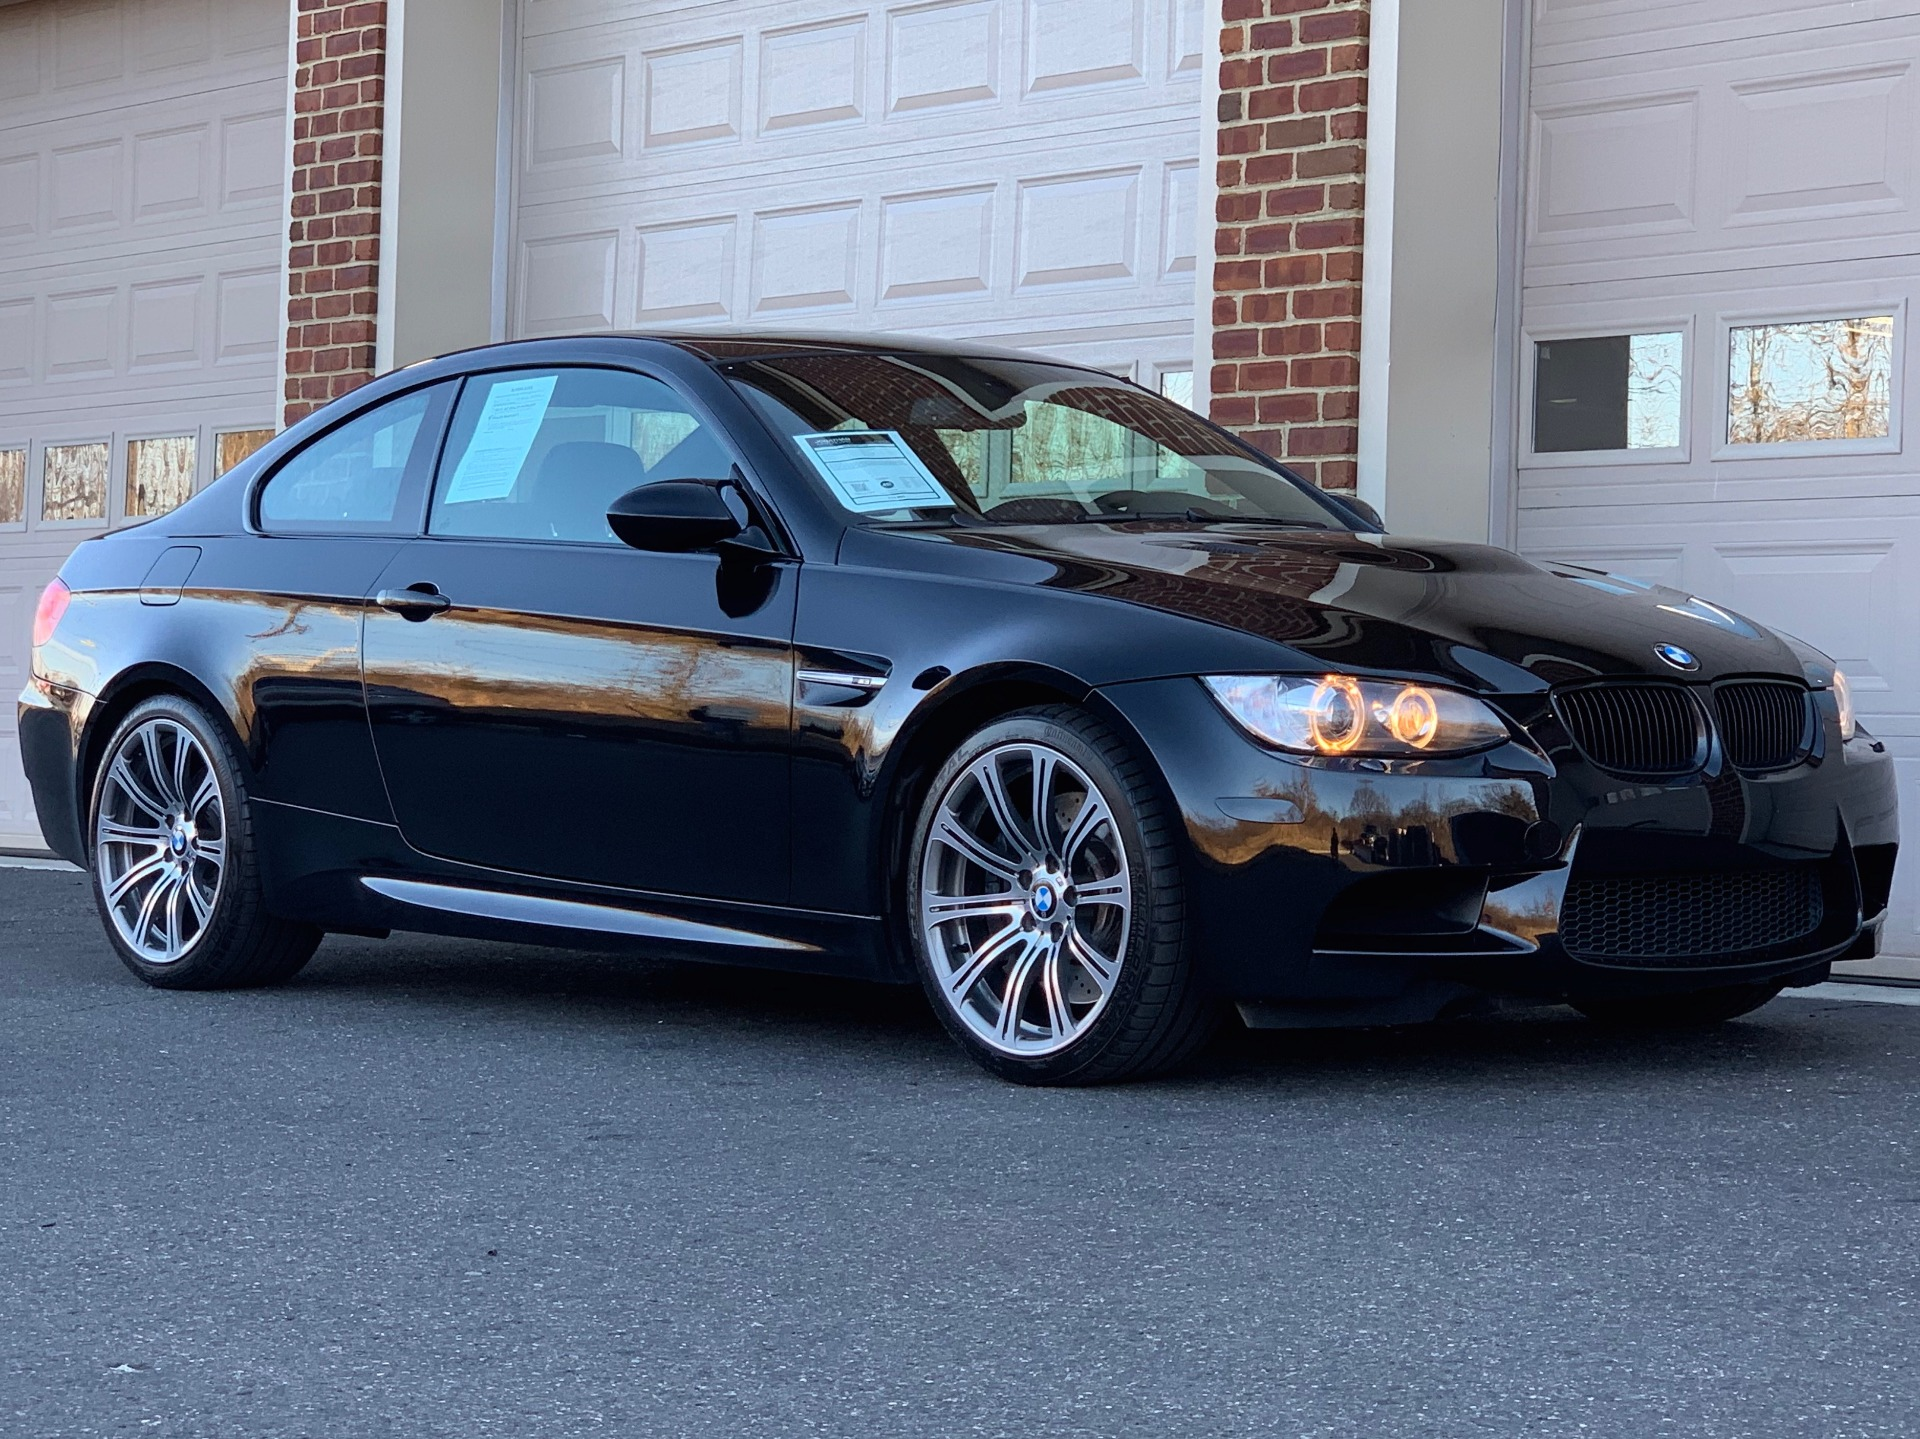 2009 Bmw M3 Coupe Stock 361744 For Sale Near Edgewater